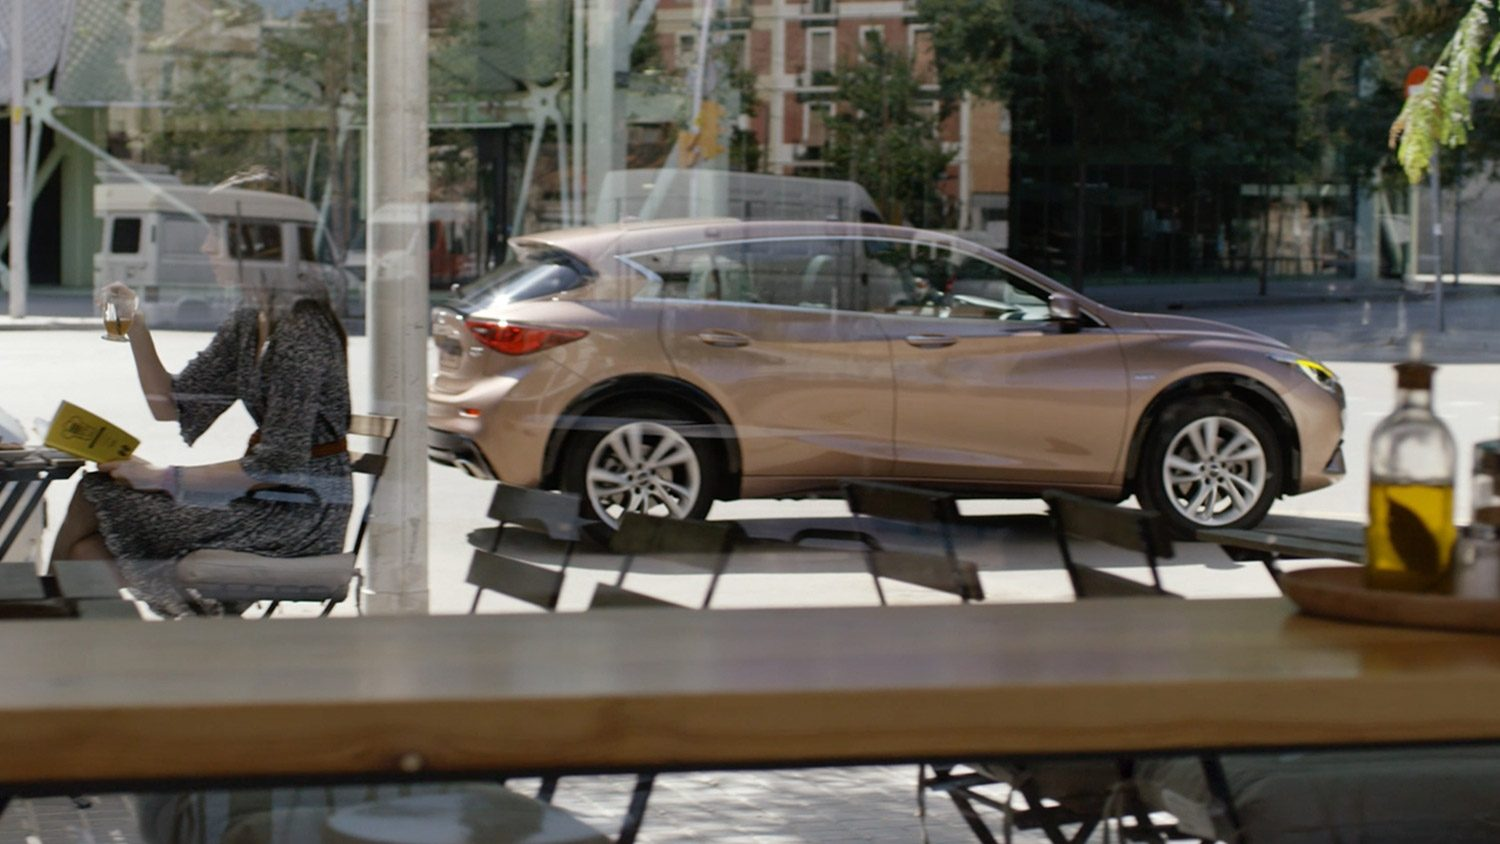 Hatchback through a cafe window